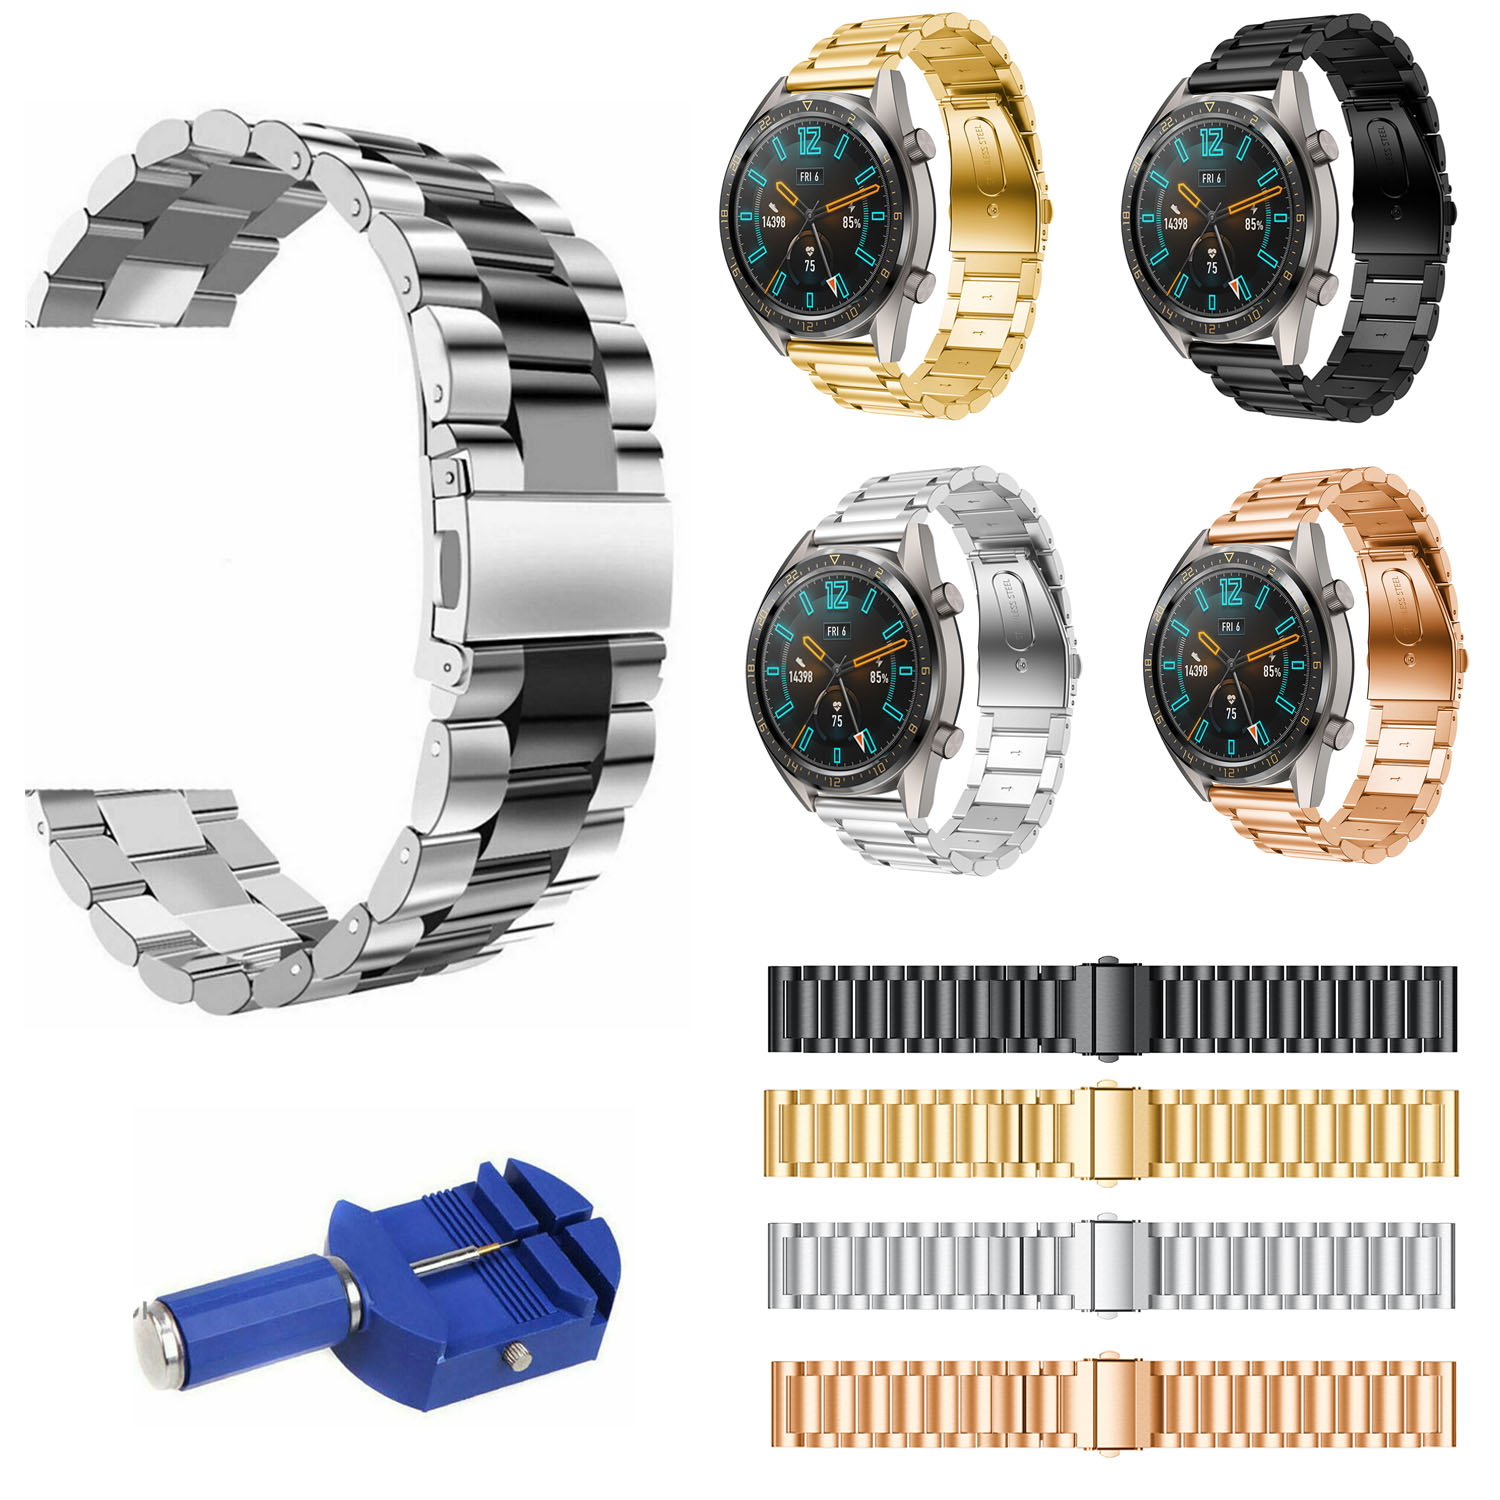 22mm Stainless Steel Band For Huawei Watch GT Strap Silver Black Metal Replacement Watchband Wristband Bracelet